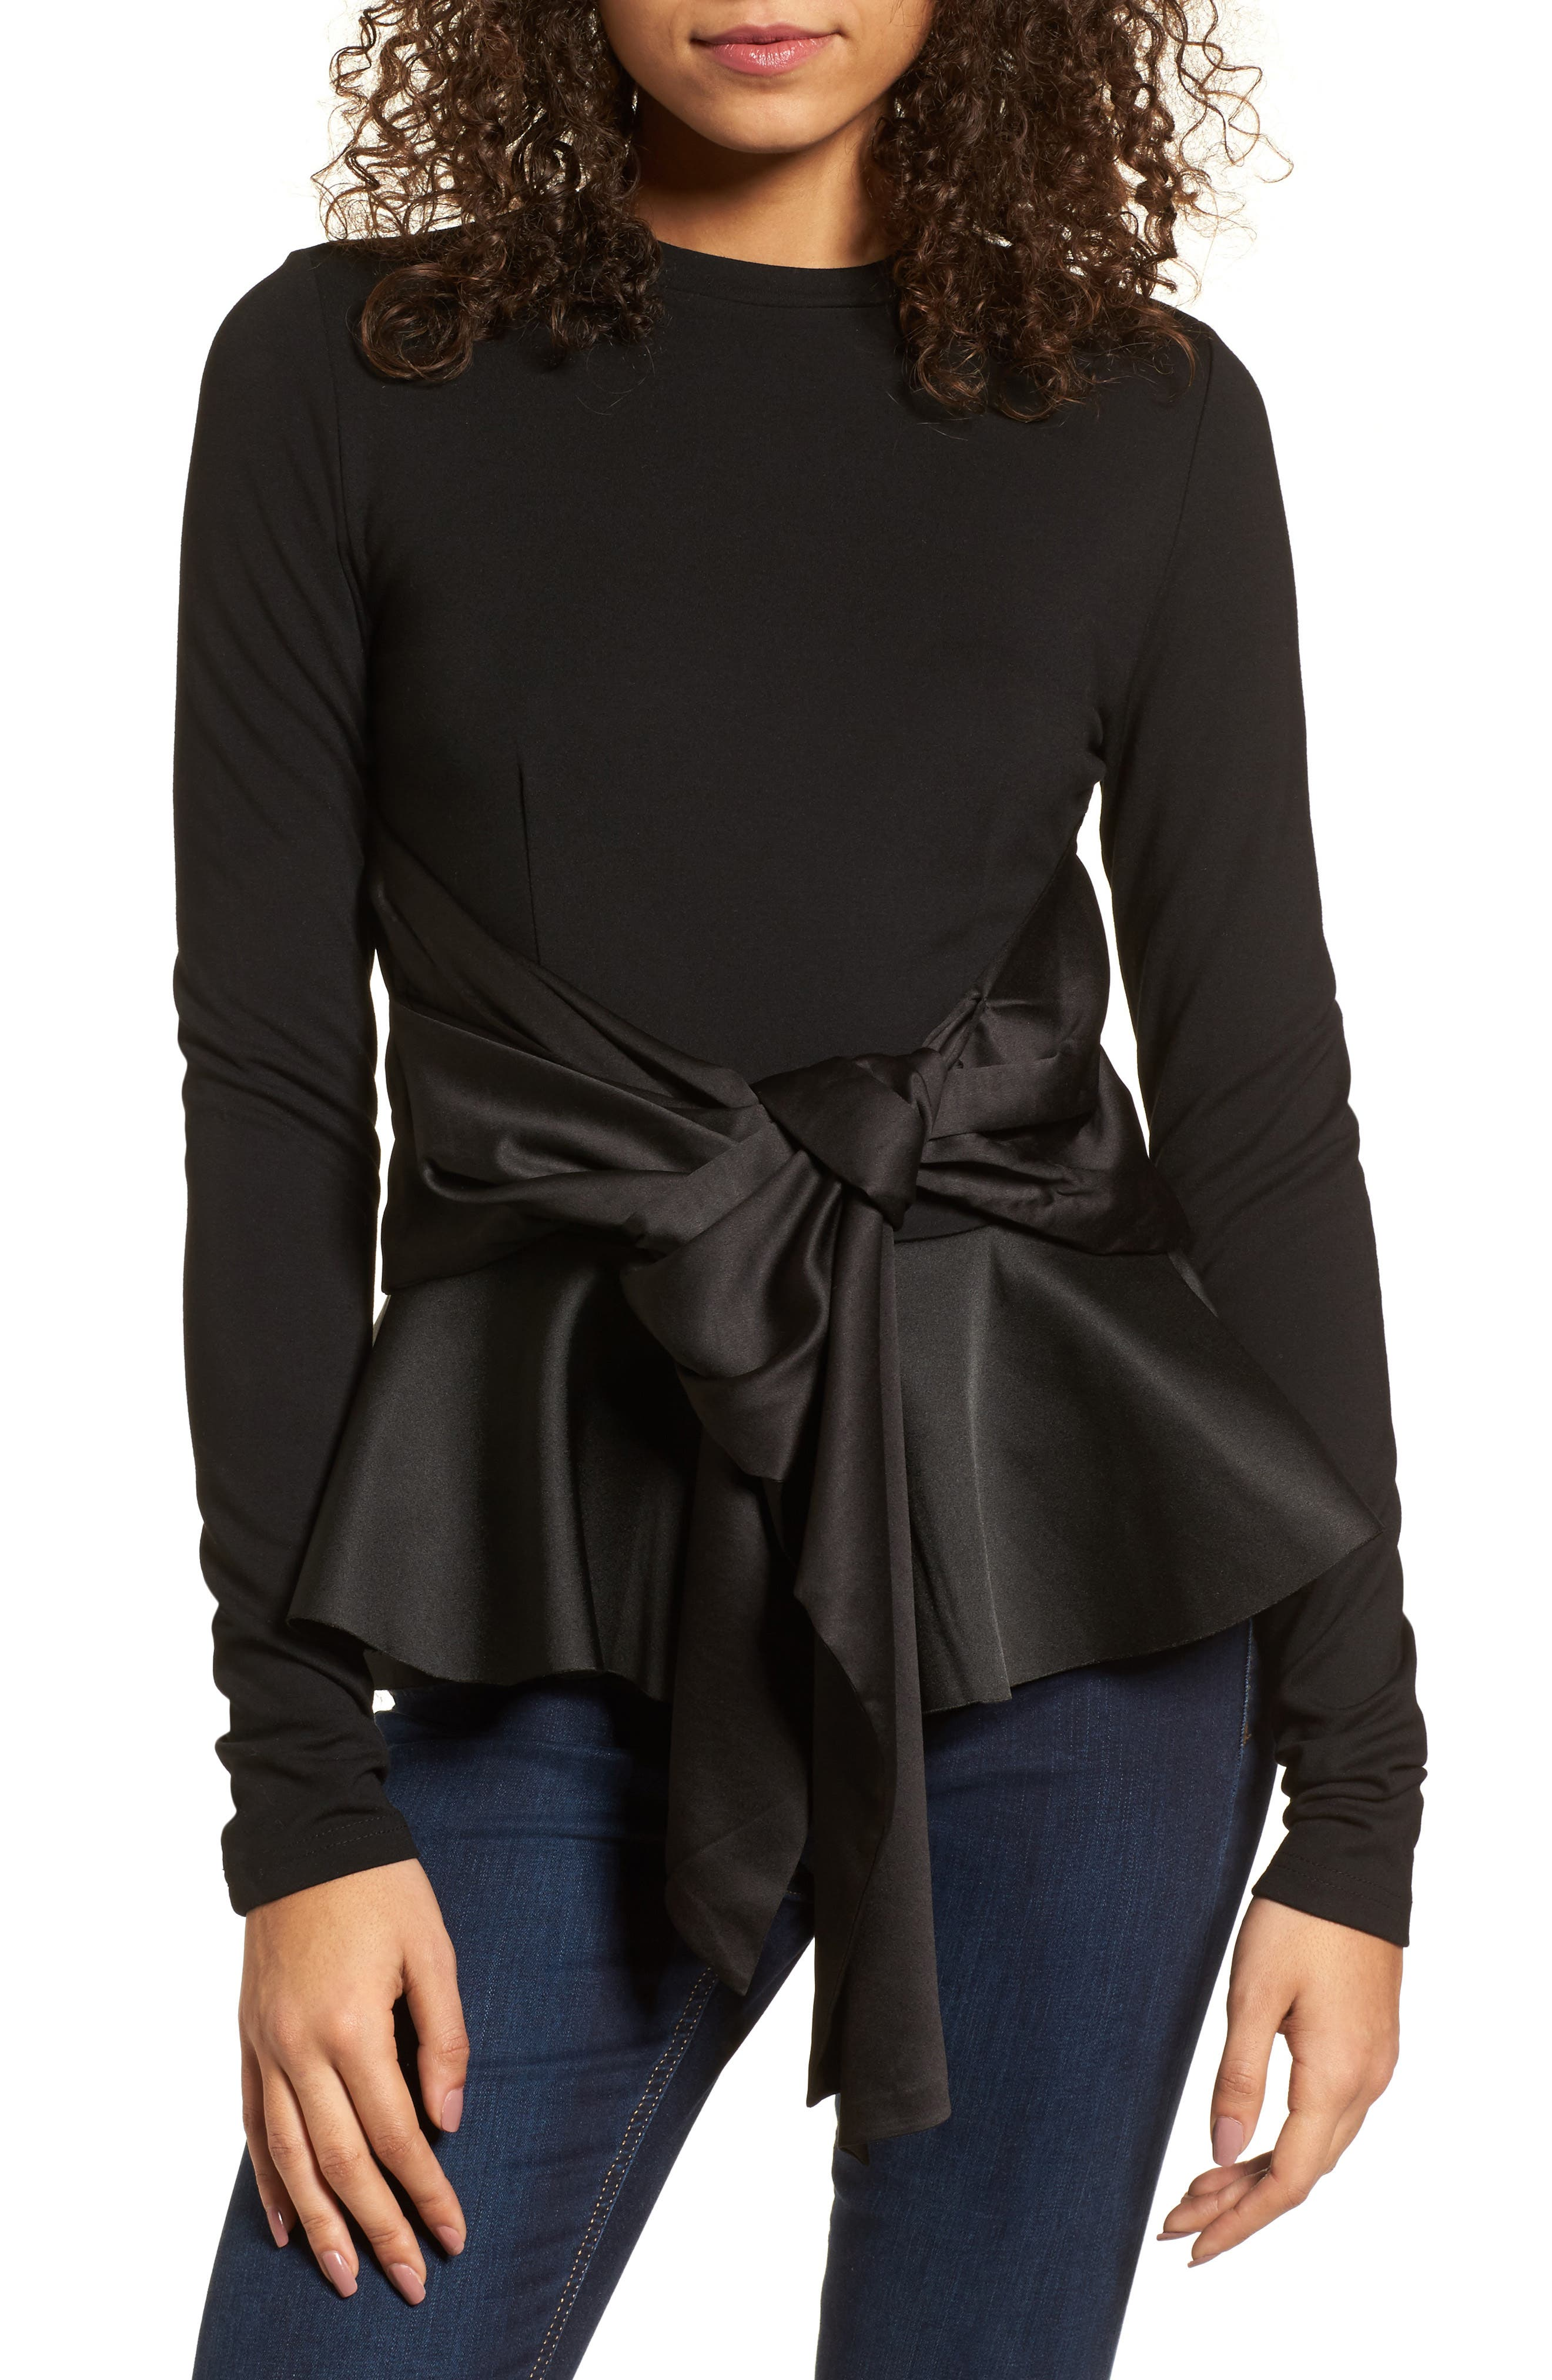 Main Image - LOST INK Big Bow Peplum Top